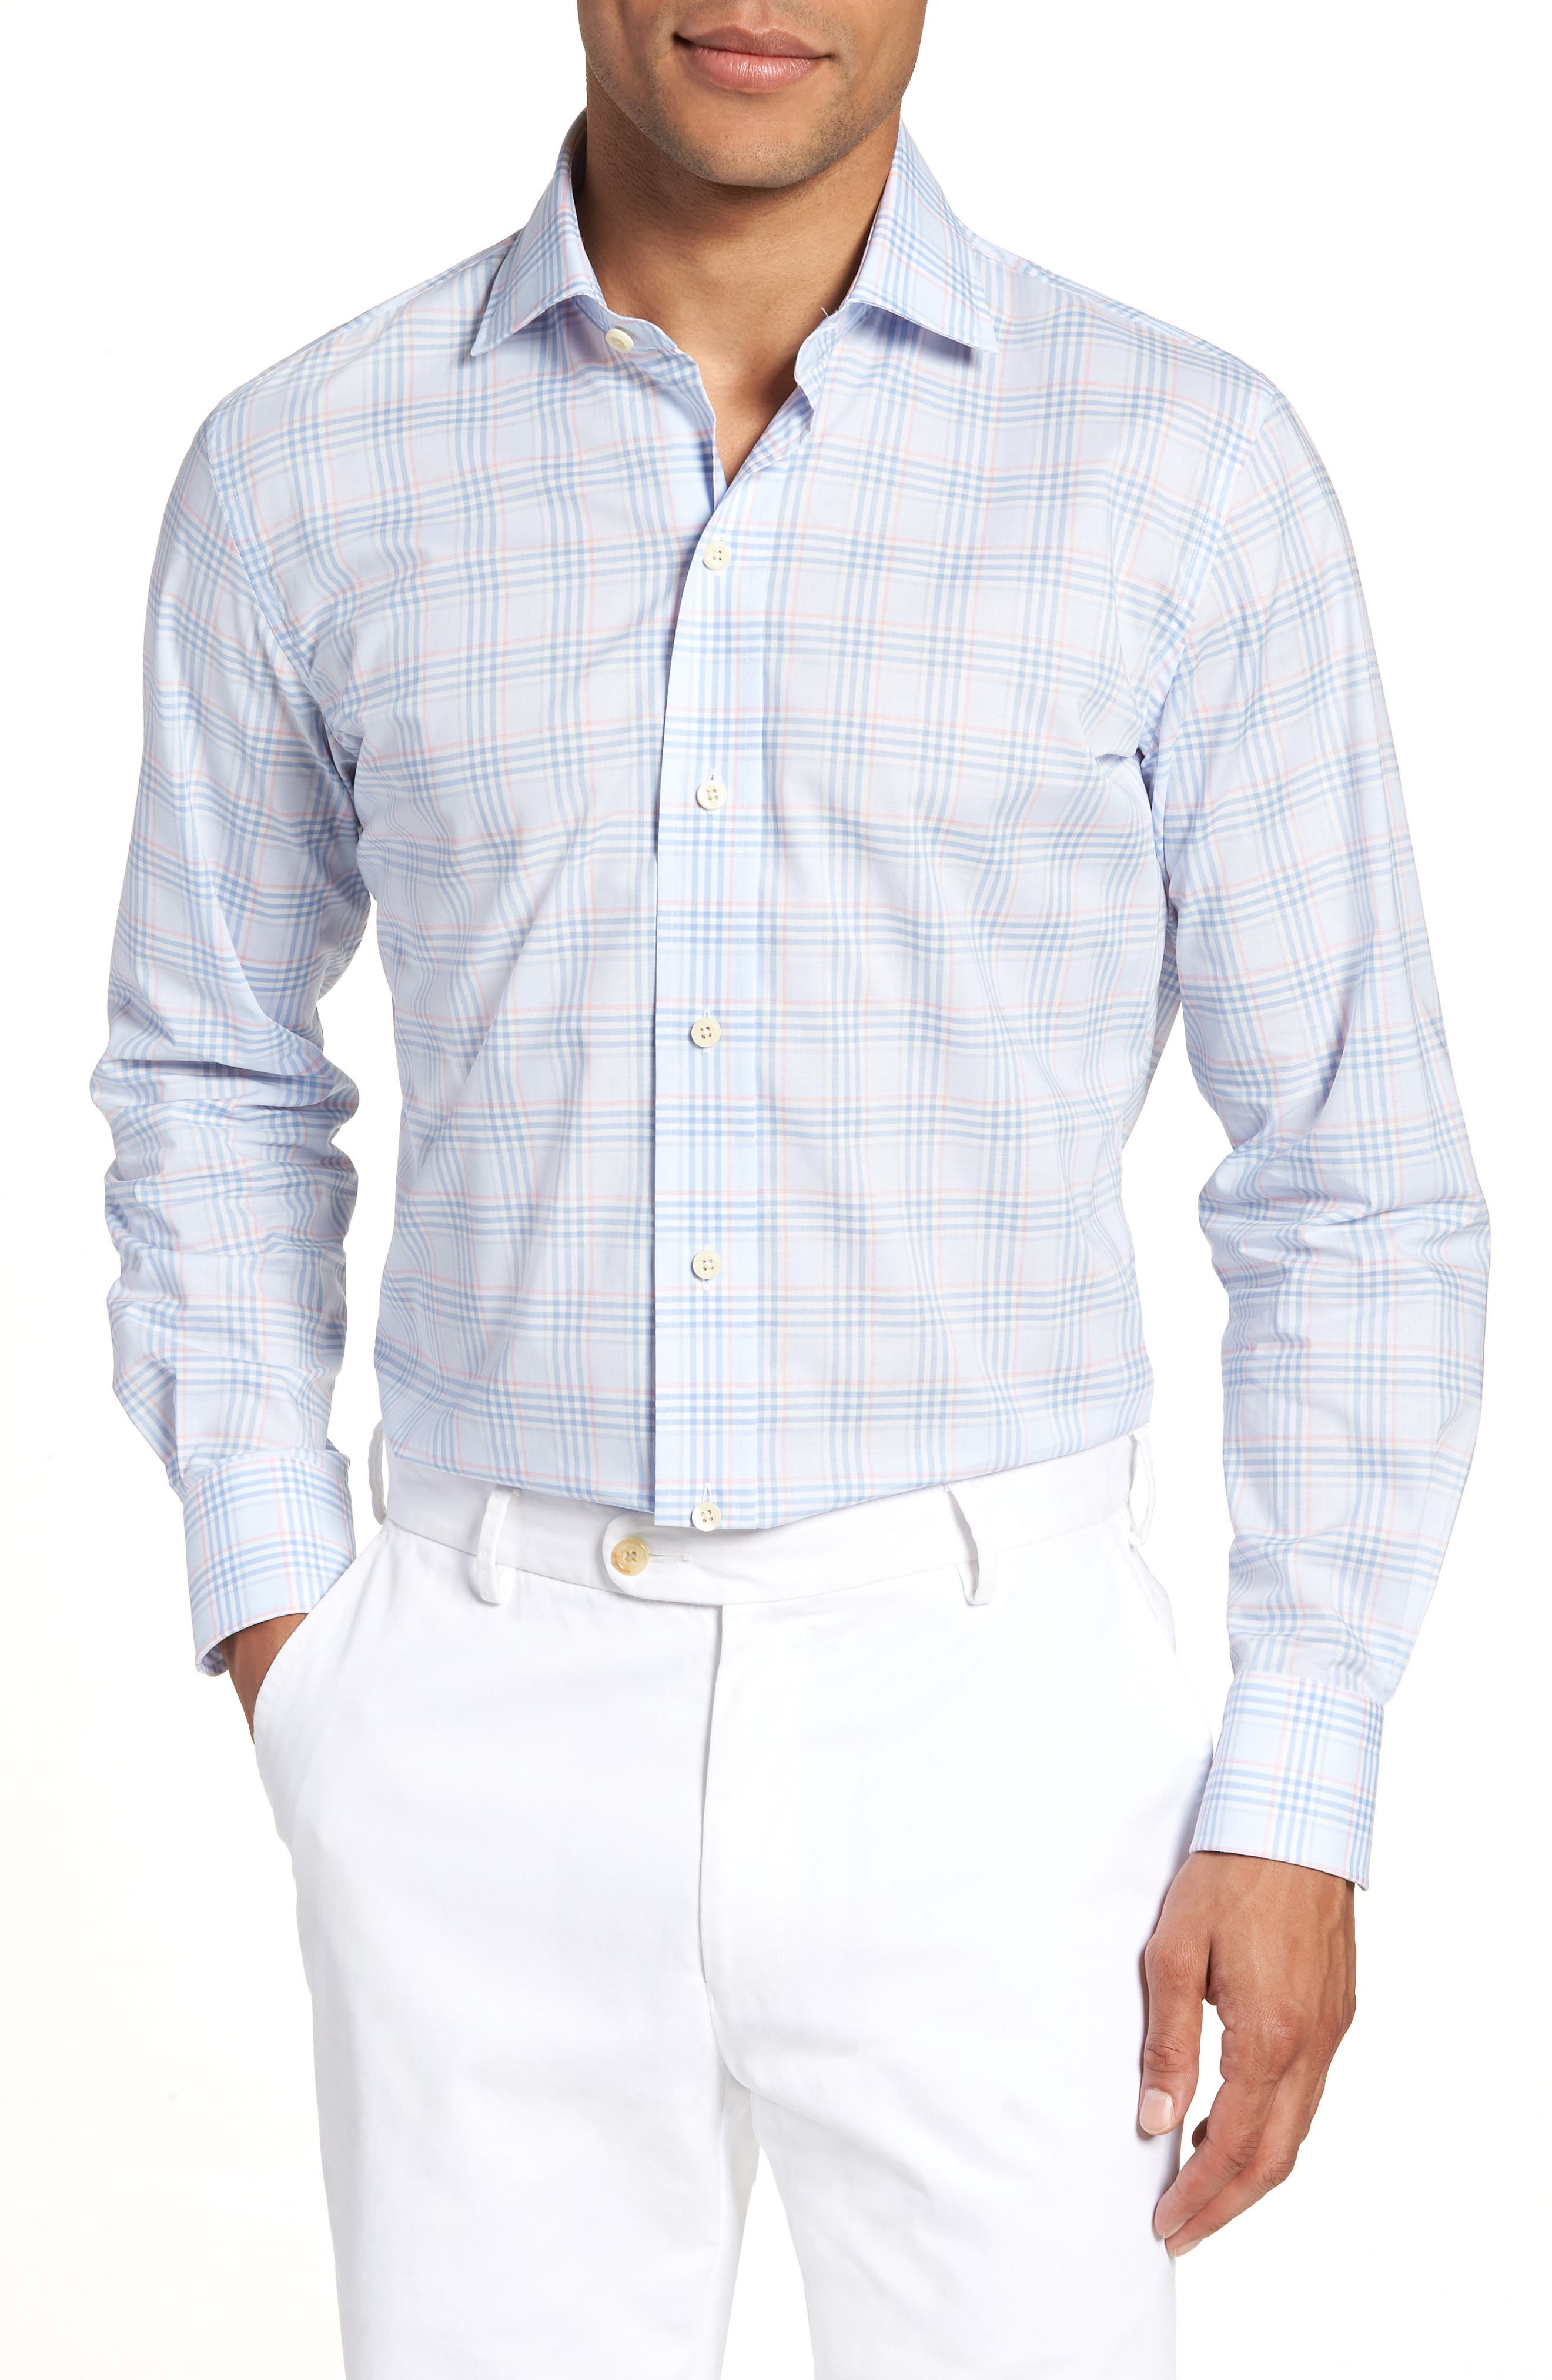 Ledbury Knollcrest Slim Fit Plaid Dress Shirt